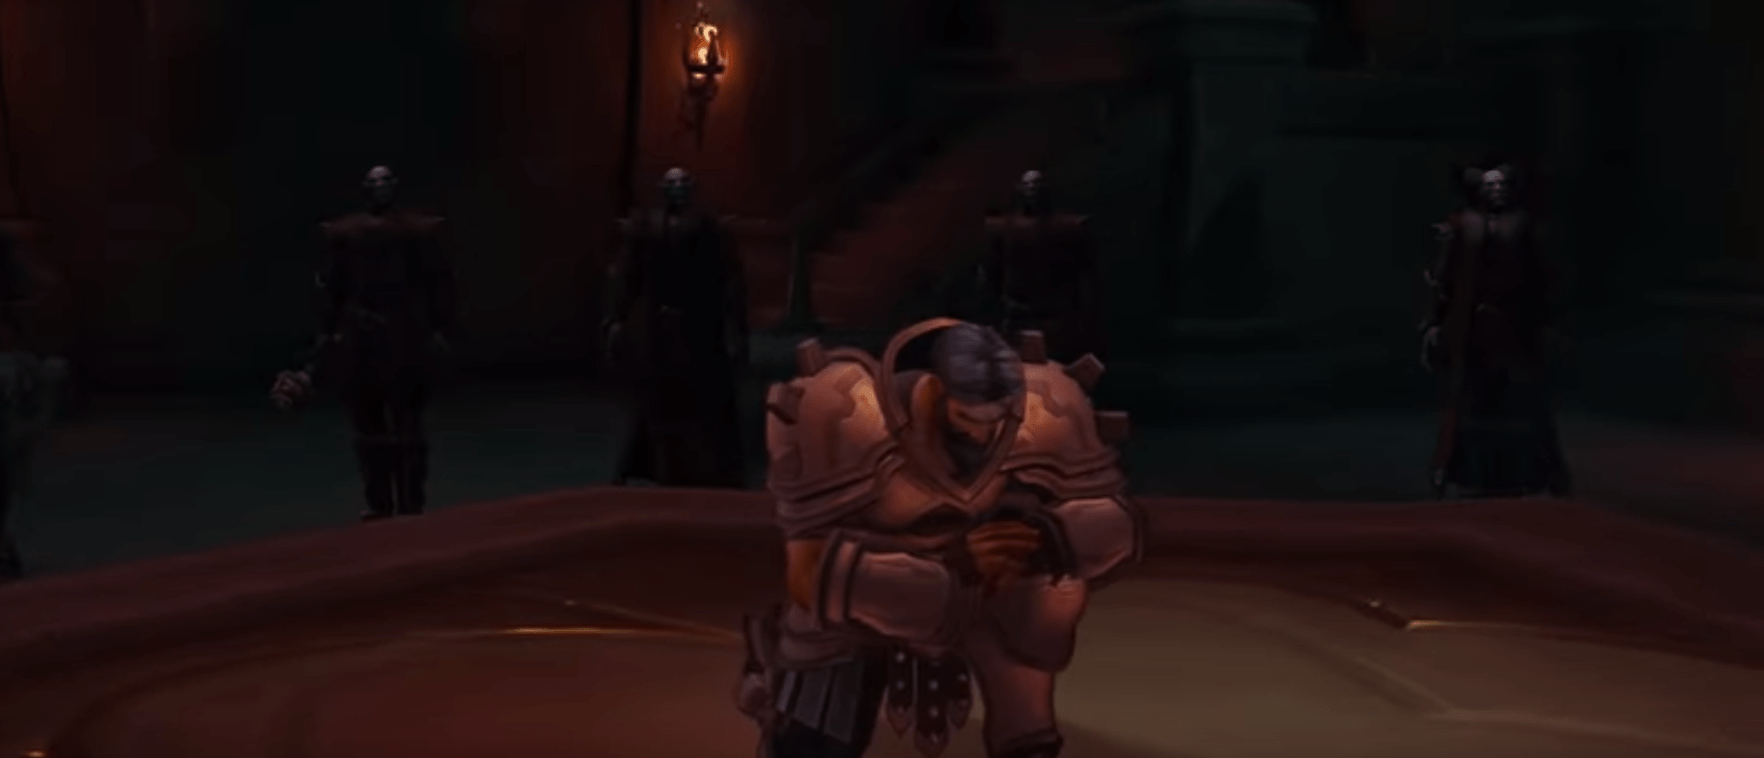 World Of Warcraft Players Are Drastically Limiting Their Power In A New Leveling Challenge